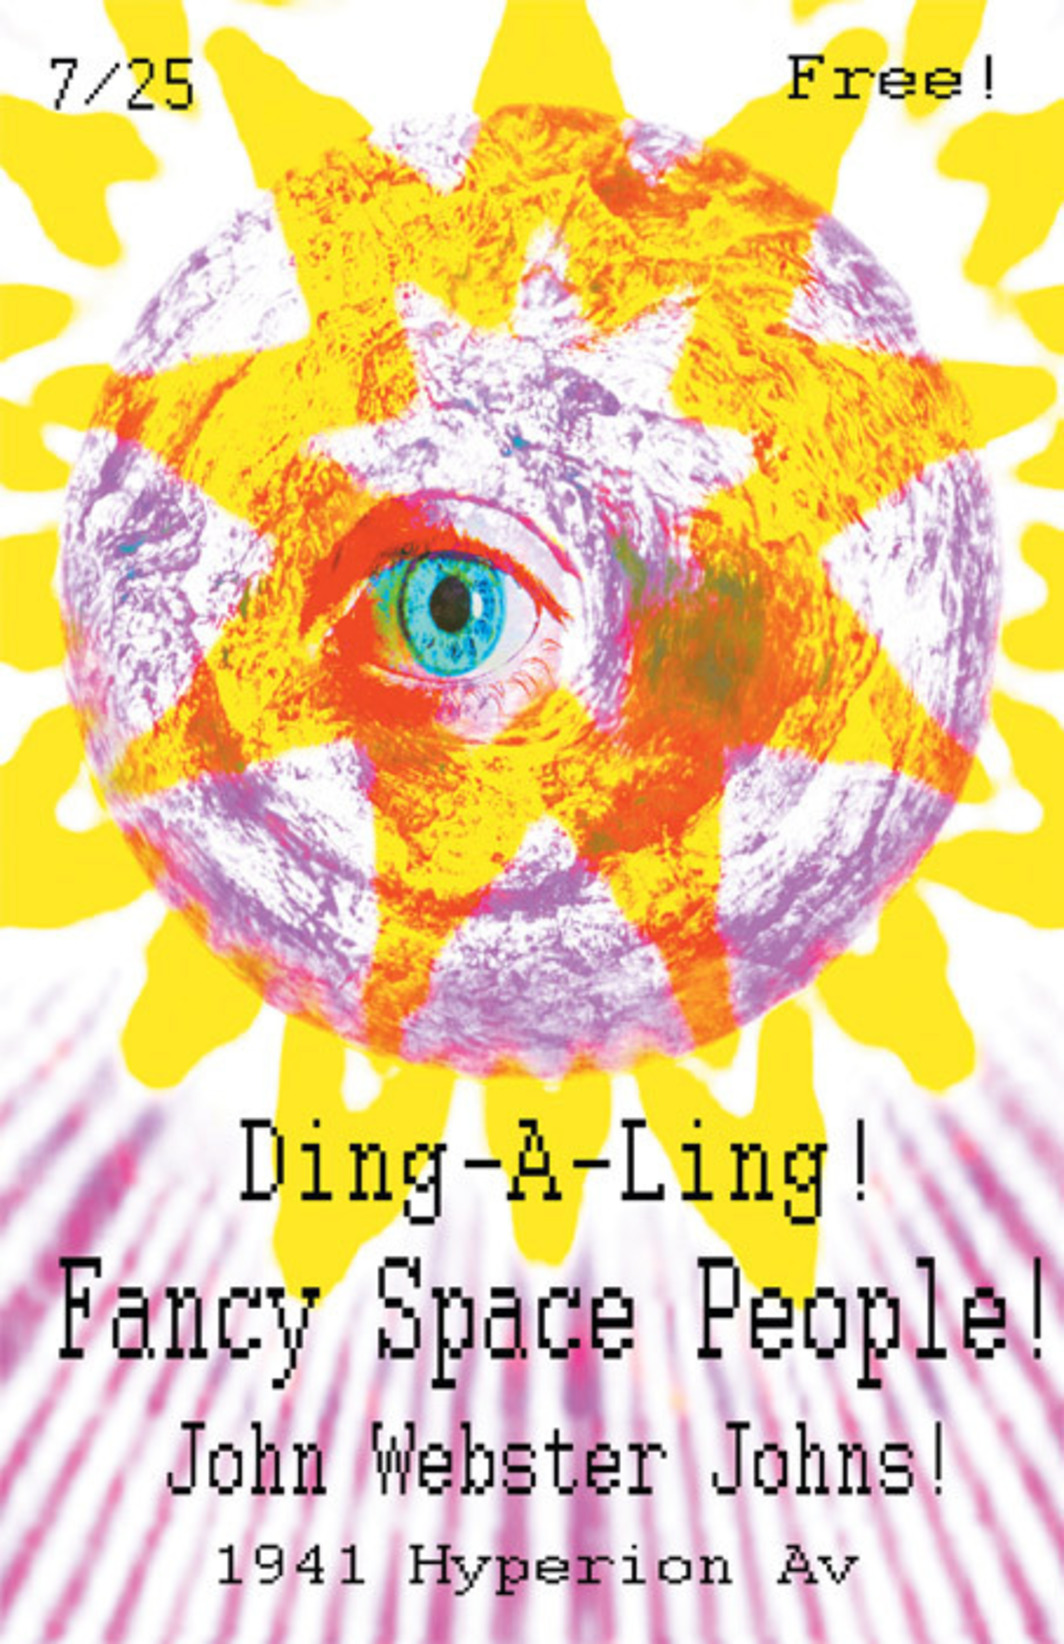 *Flyer for July 25 Club Ding-a-Ling party, Los Angeles, designed by Nora Keyes, 2009.*